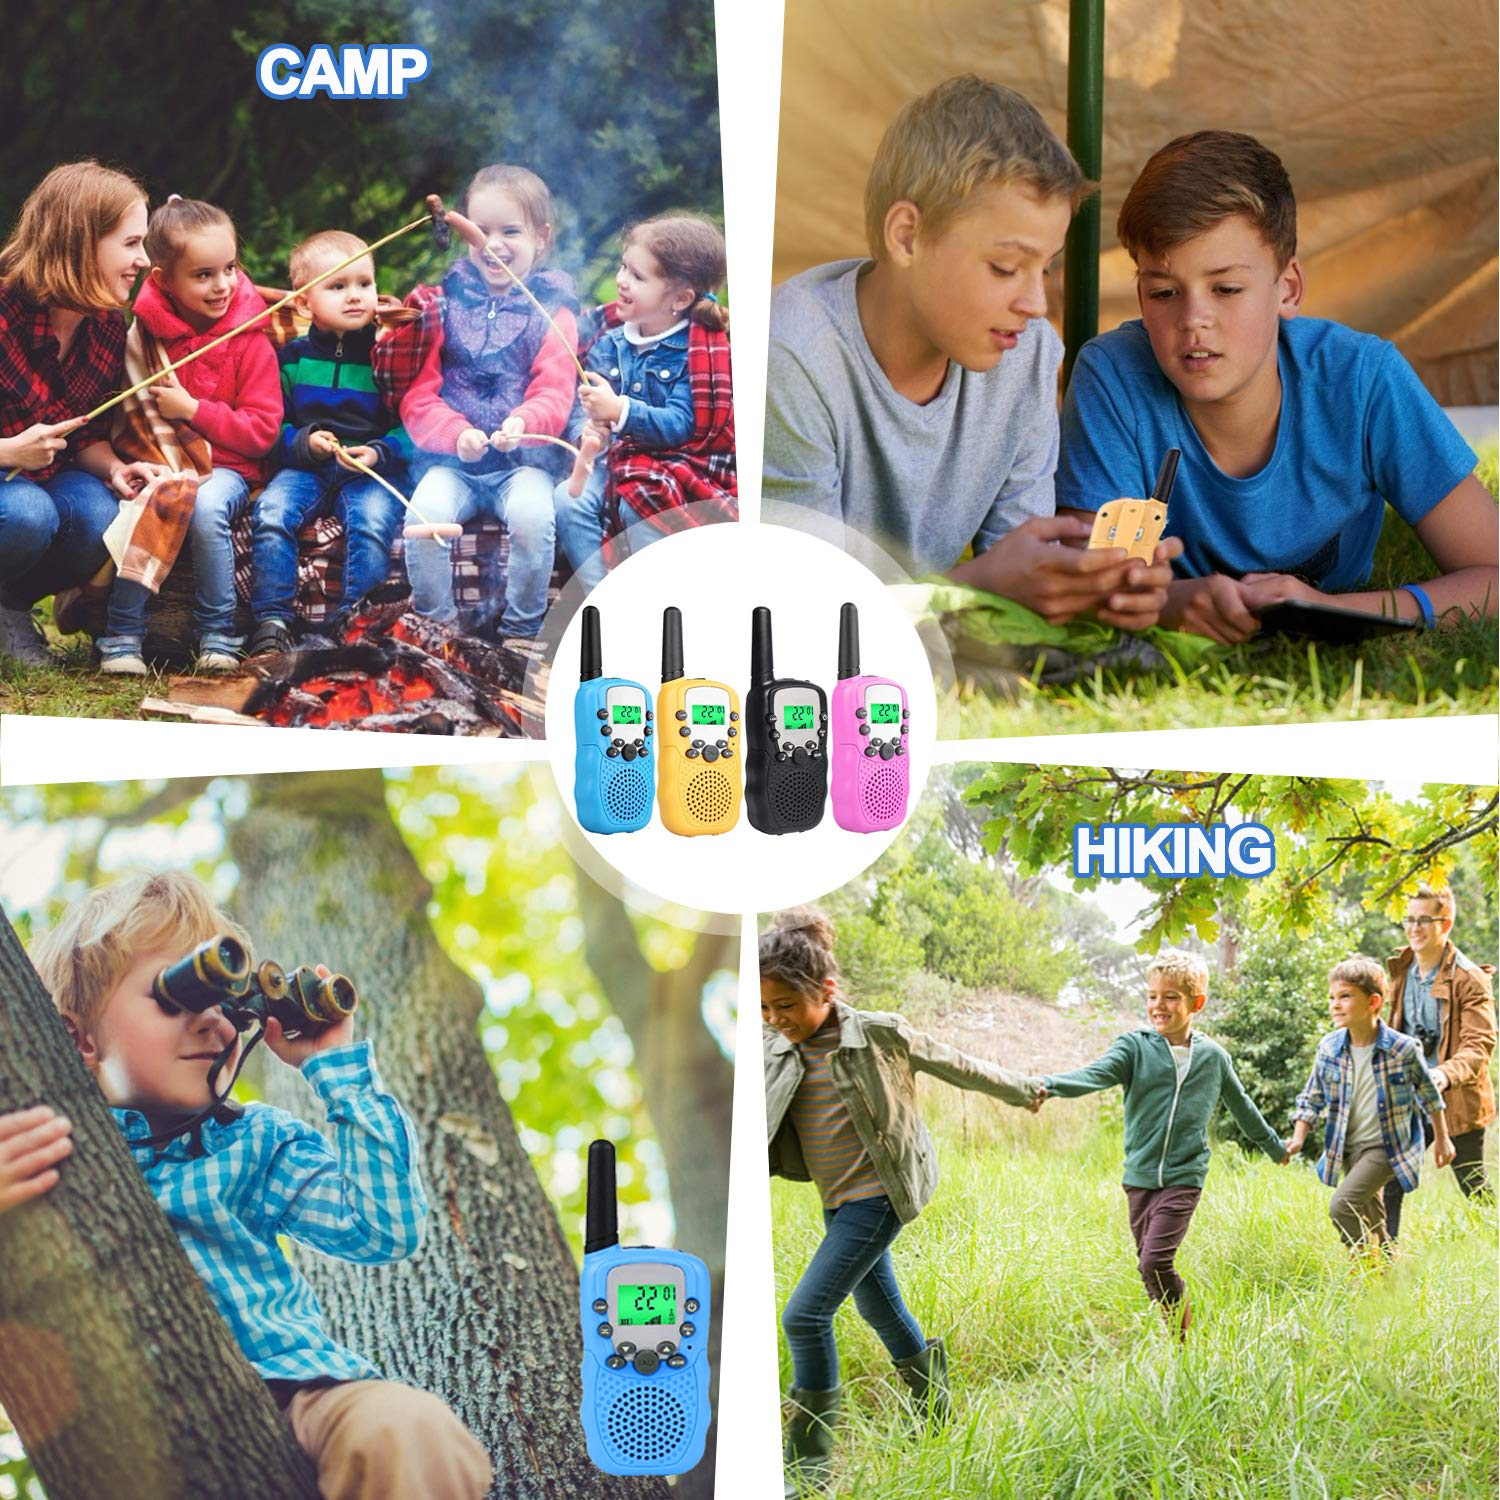 Kids Walkie Talkies Toys for 3-12 Year Old Boys Girls Toddlers, 4 Pack Walkie Talkies with 4 Earphones, 3 Mile Range 22 Channel Flashlight Two-Way Radio, Accessory for Outdoor Adventure Camping Game by iGeeKid (Image #5)